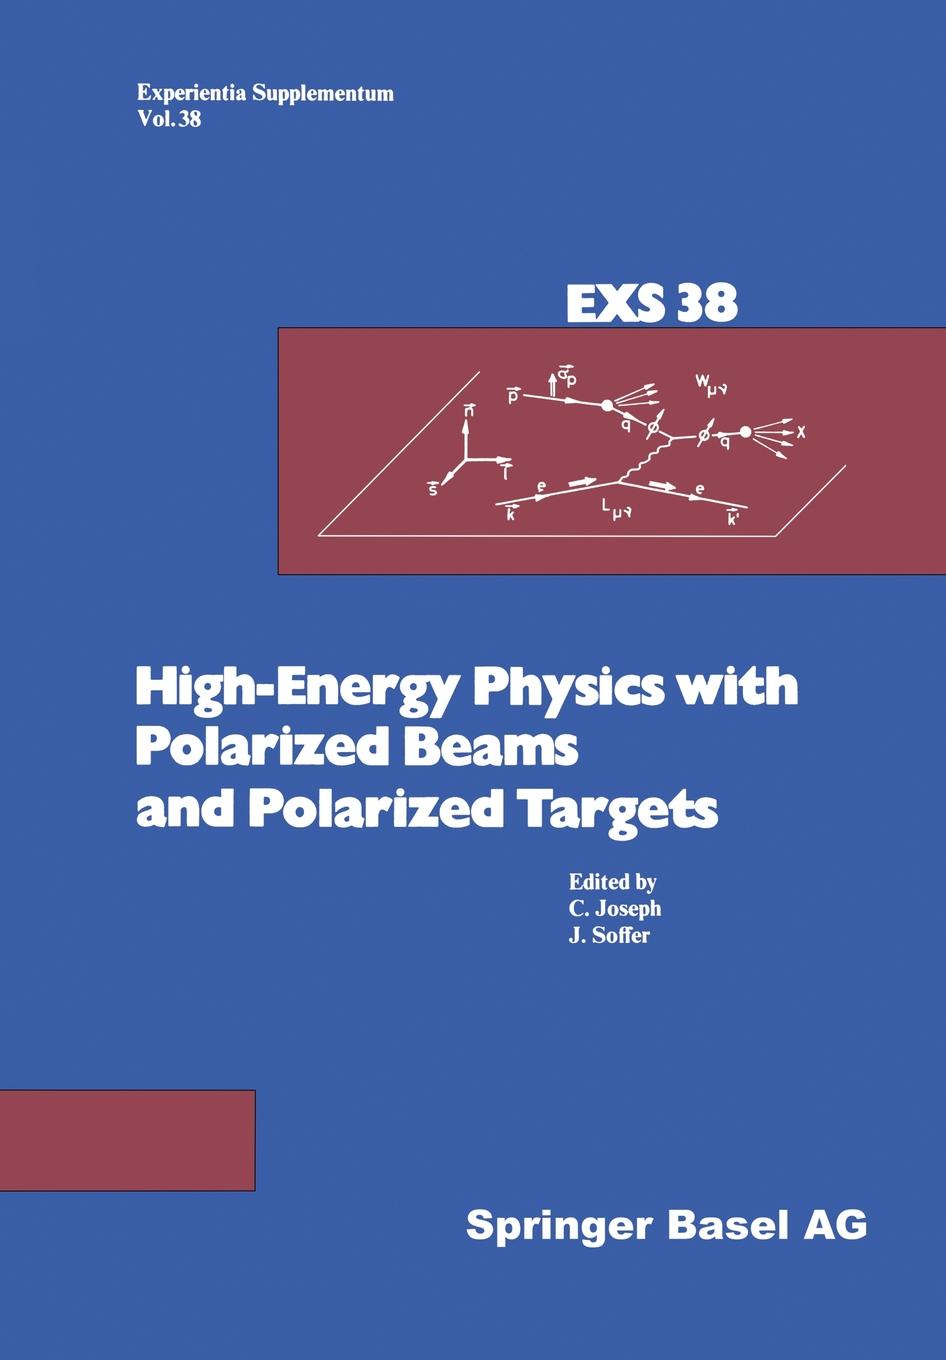 Joseph, Soffer High-Energy Physics with Polarized Beams and Targets. Proceedings of the 1980 International Symposium, Lausanne, September 25 - October 1,